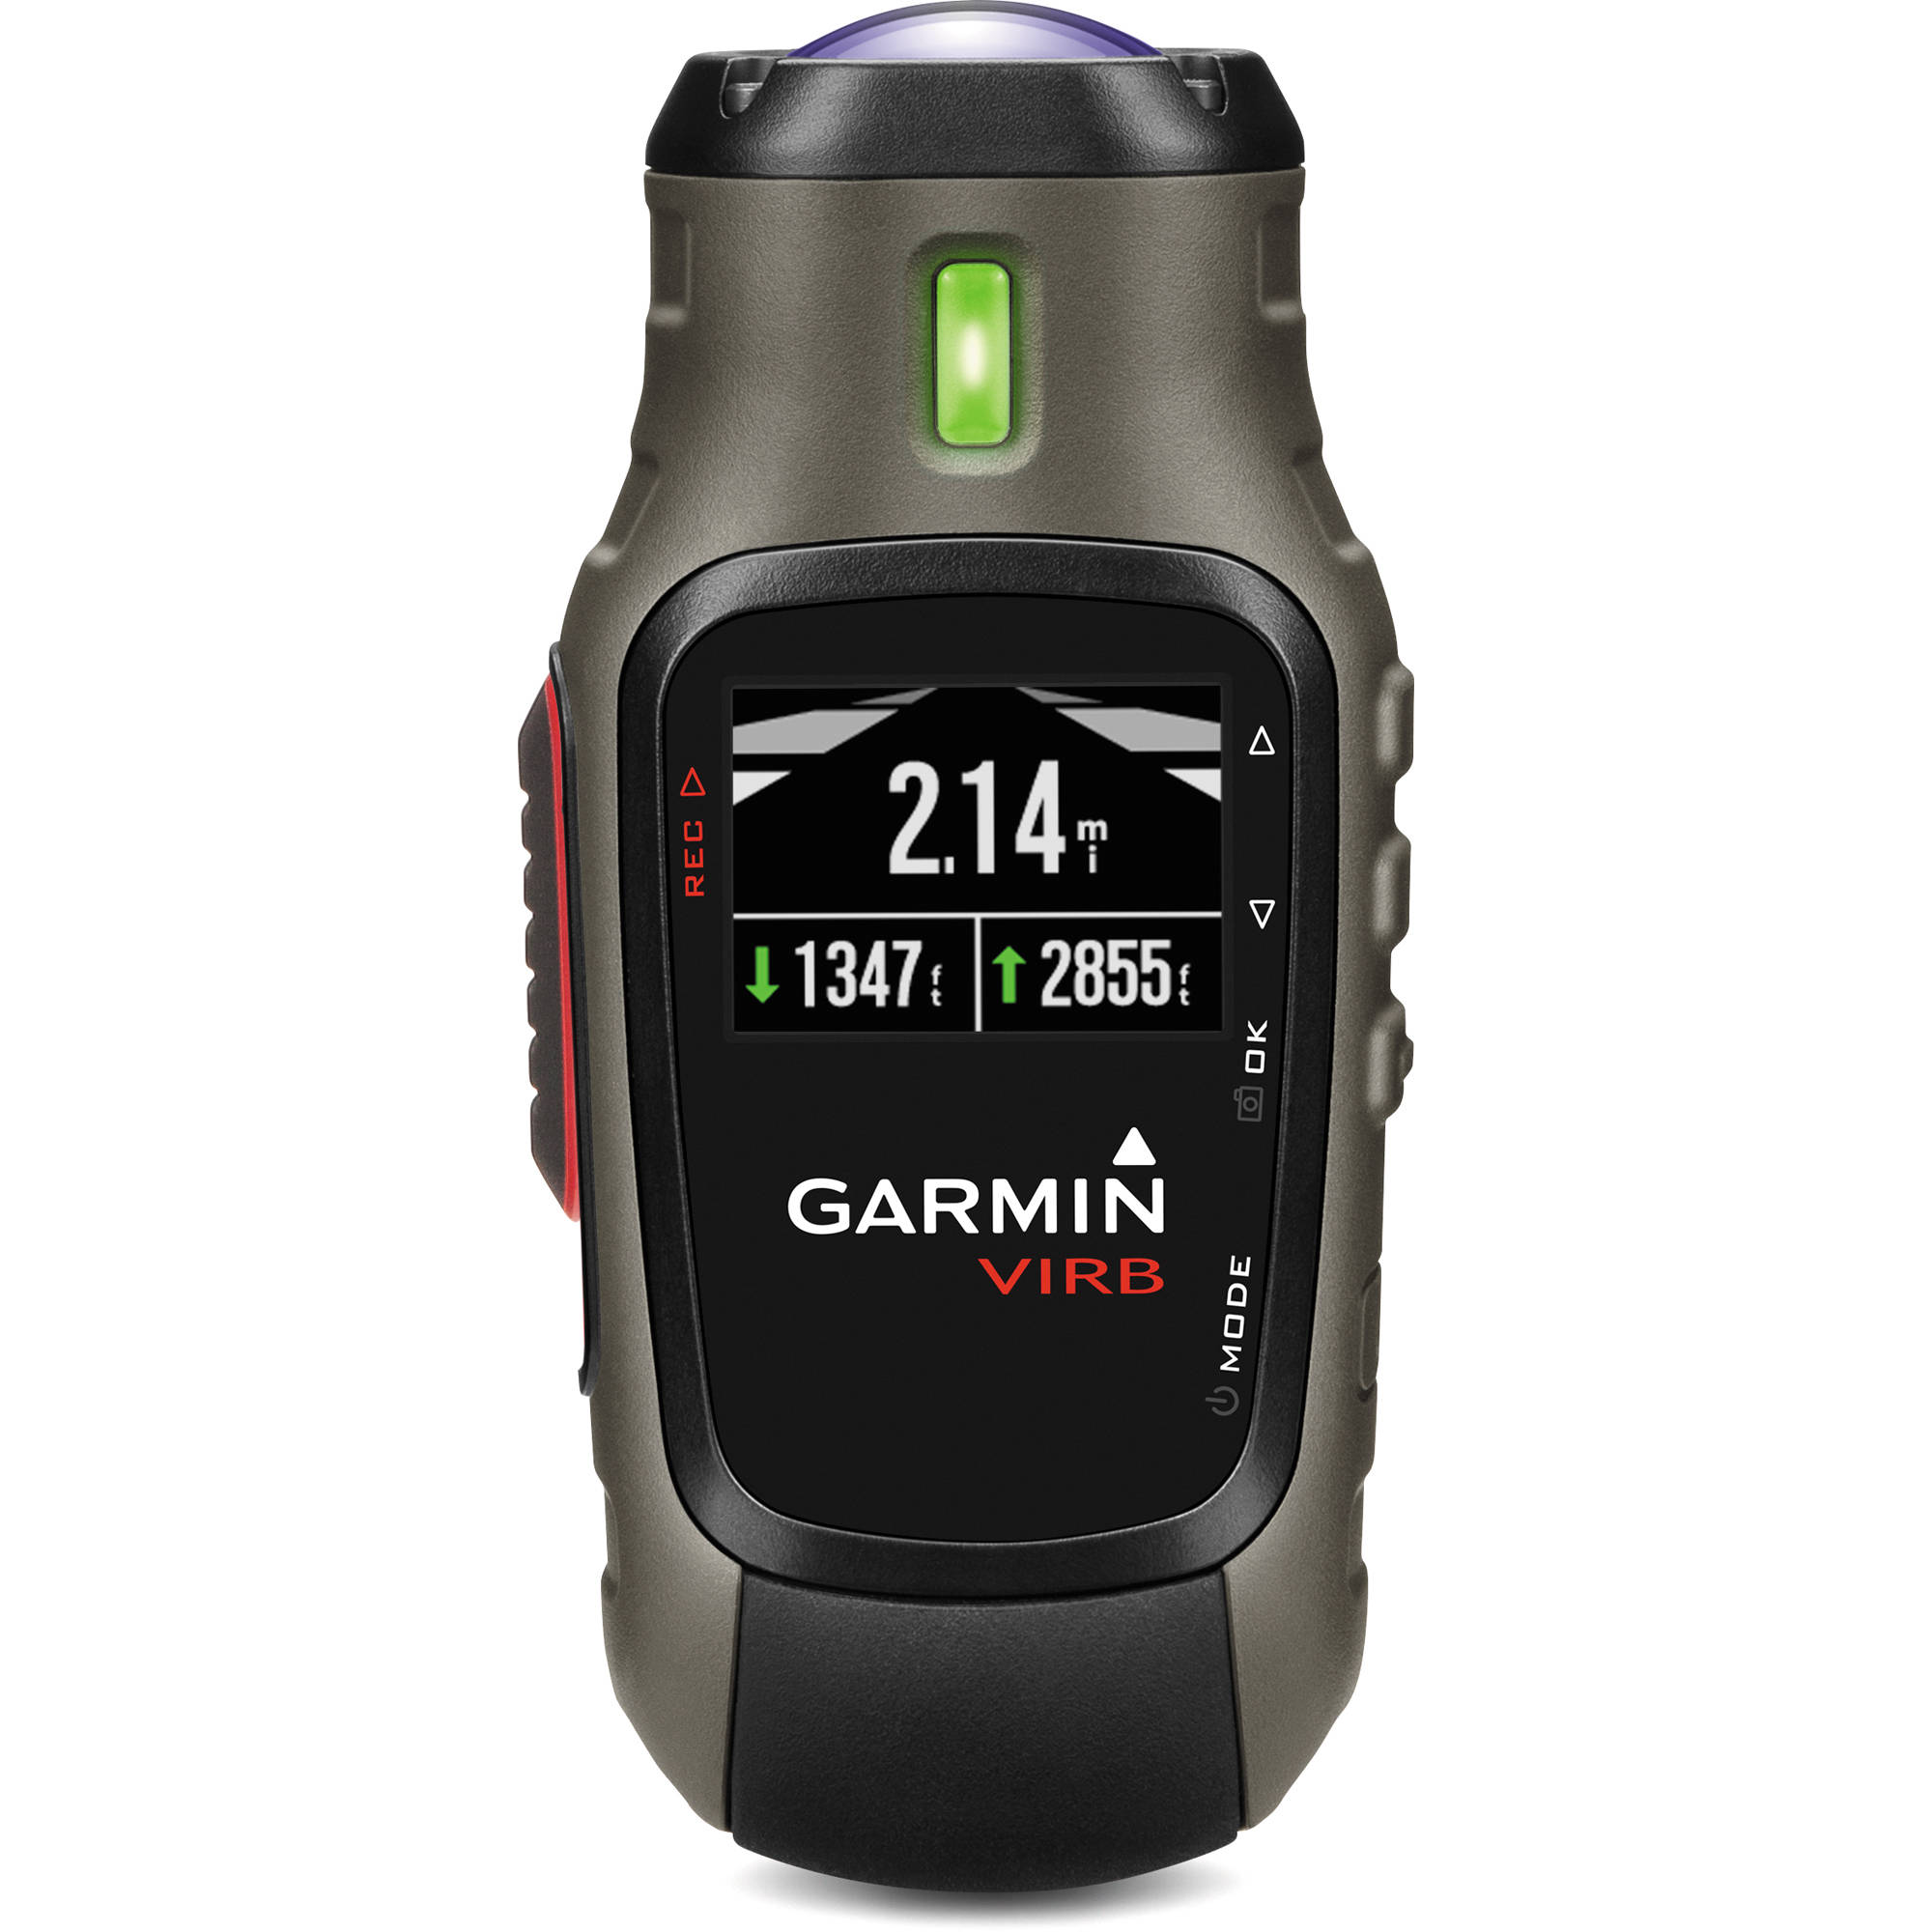 Garmin VIRB Elite Action Camera with WiFi and GPS 0100108815